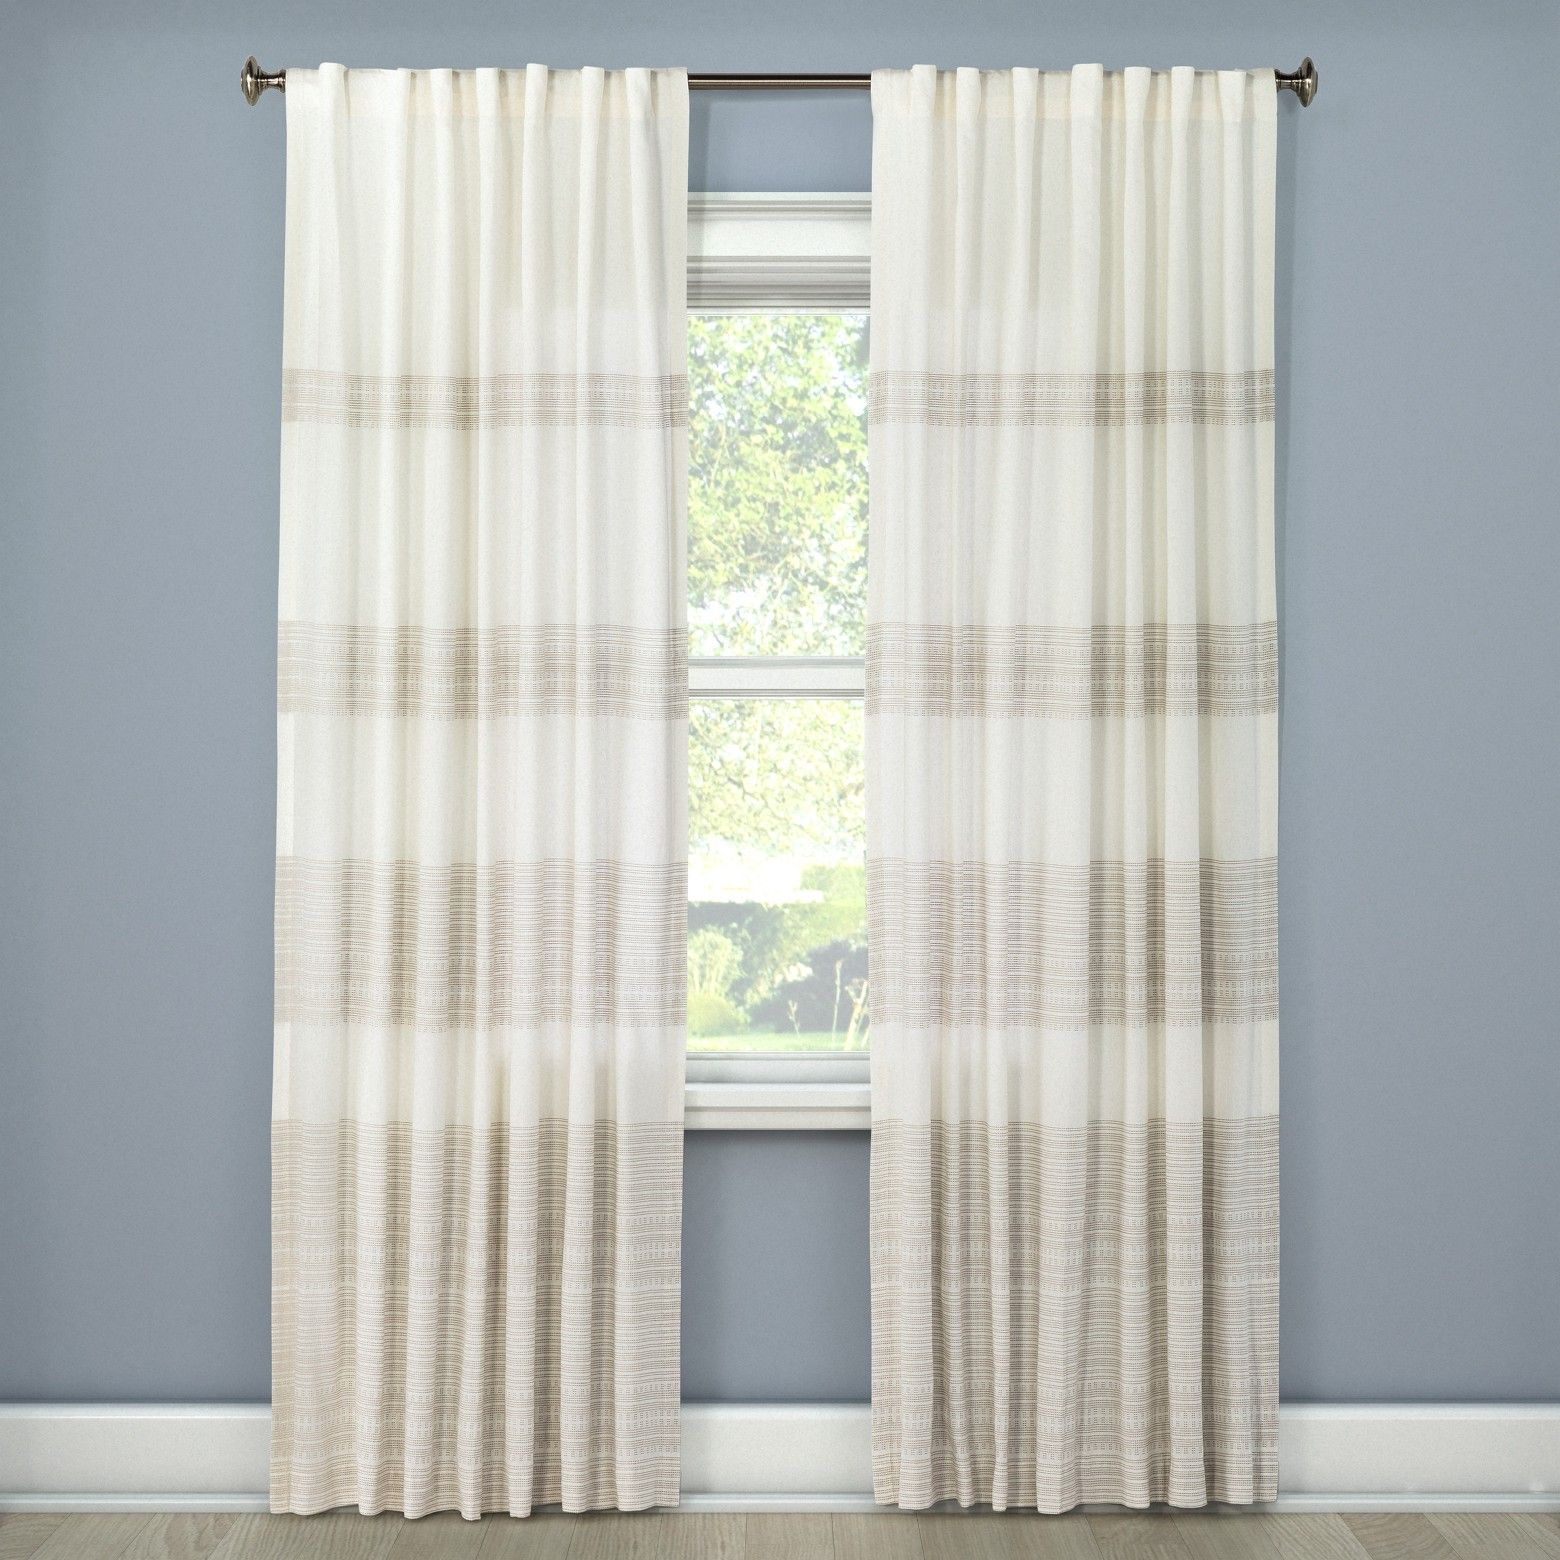 Threshold global stitch curtain panel room basement furniture and